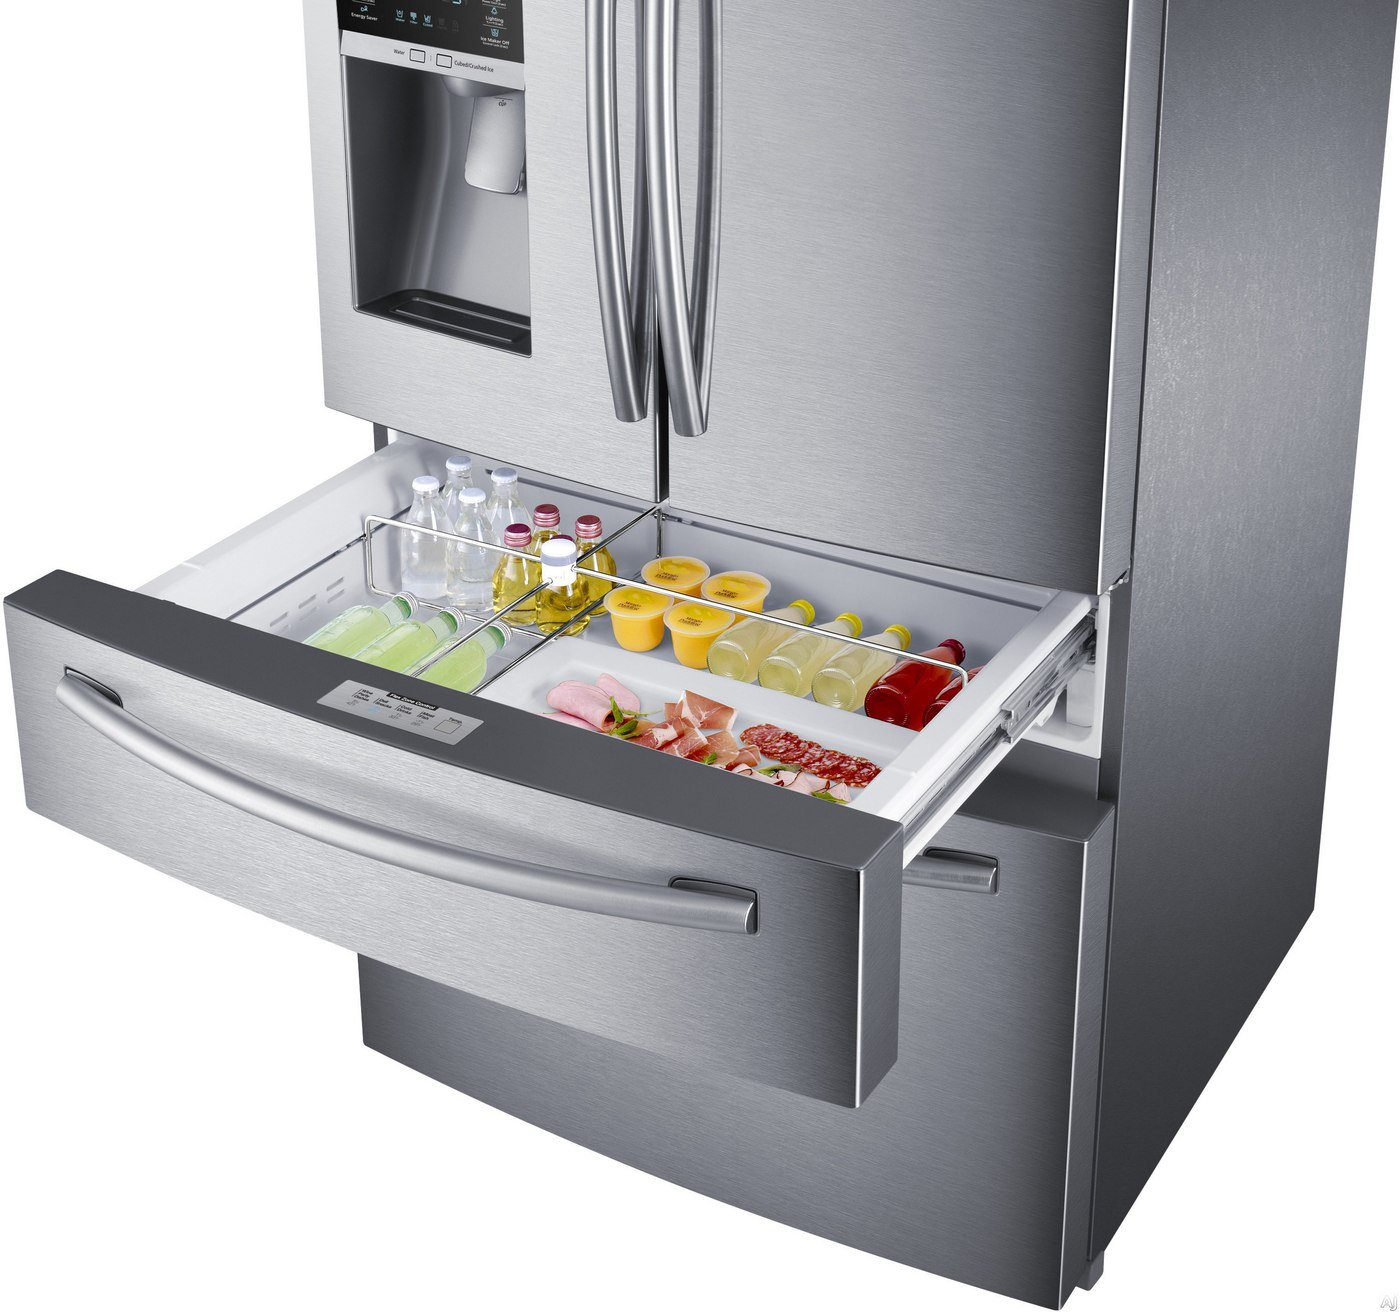 Best Double Drawer French Door Refrigerators (reviewsratings. Desk Phone With Headset Port. Tiffany Desk Sets For Sale. Queen Size Bed Frame With Drawers Underneath. Outdoor Round Table. Things To Put On A Desk. Desk Shelf Bracket. Desk Jet 1510. Computer Desk Wayfair